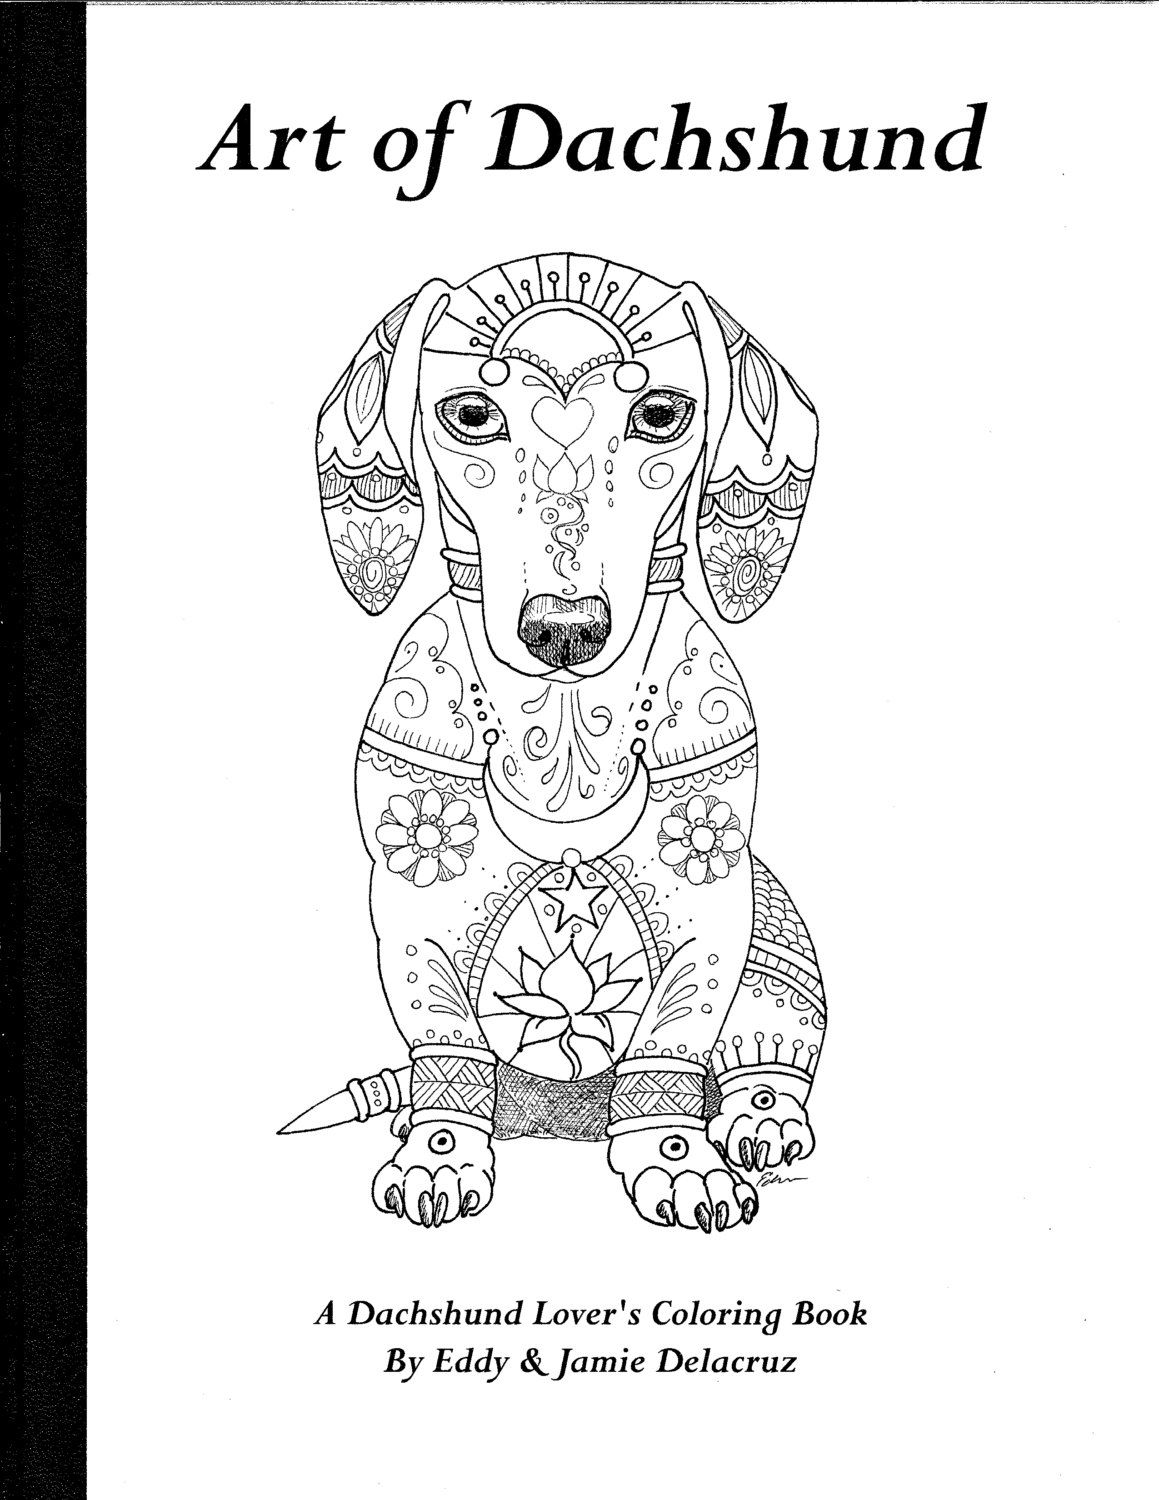 art of dachshund coloring book physical book di artbyeddy su etsy